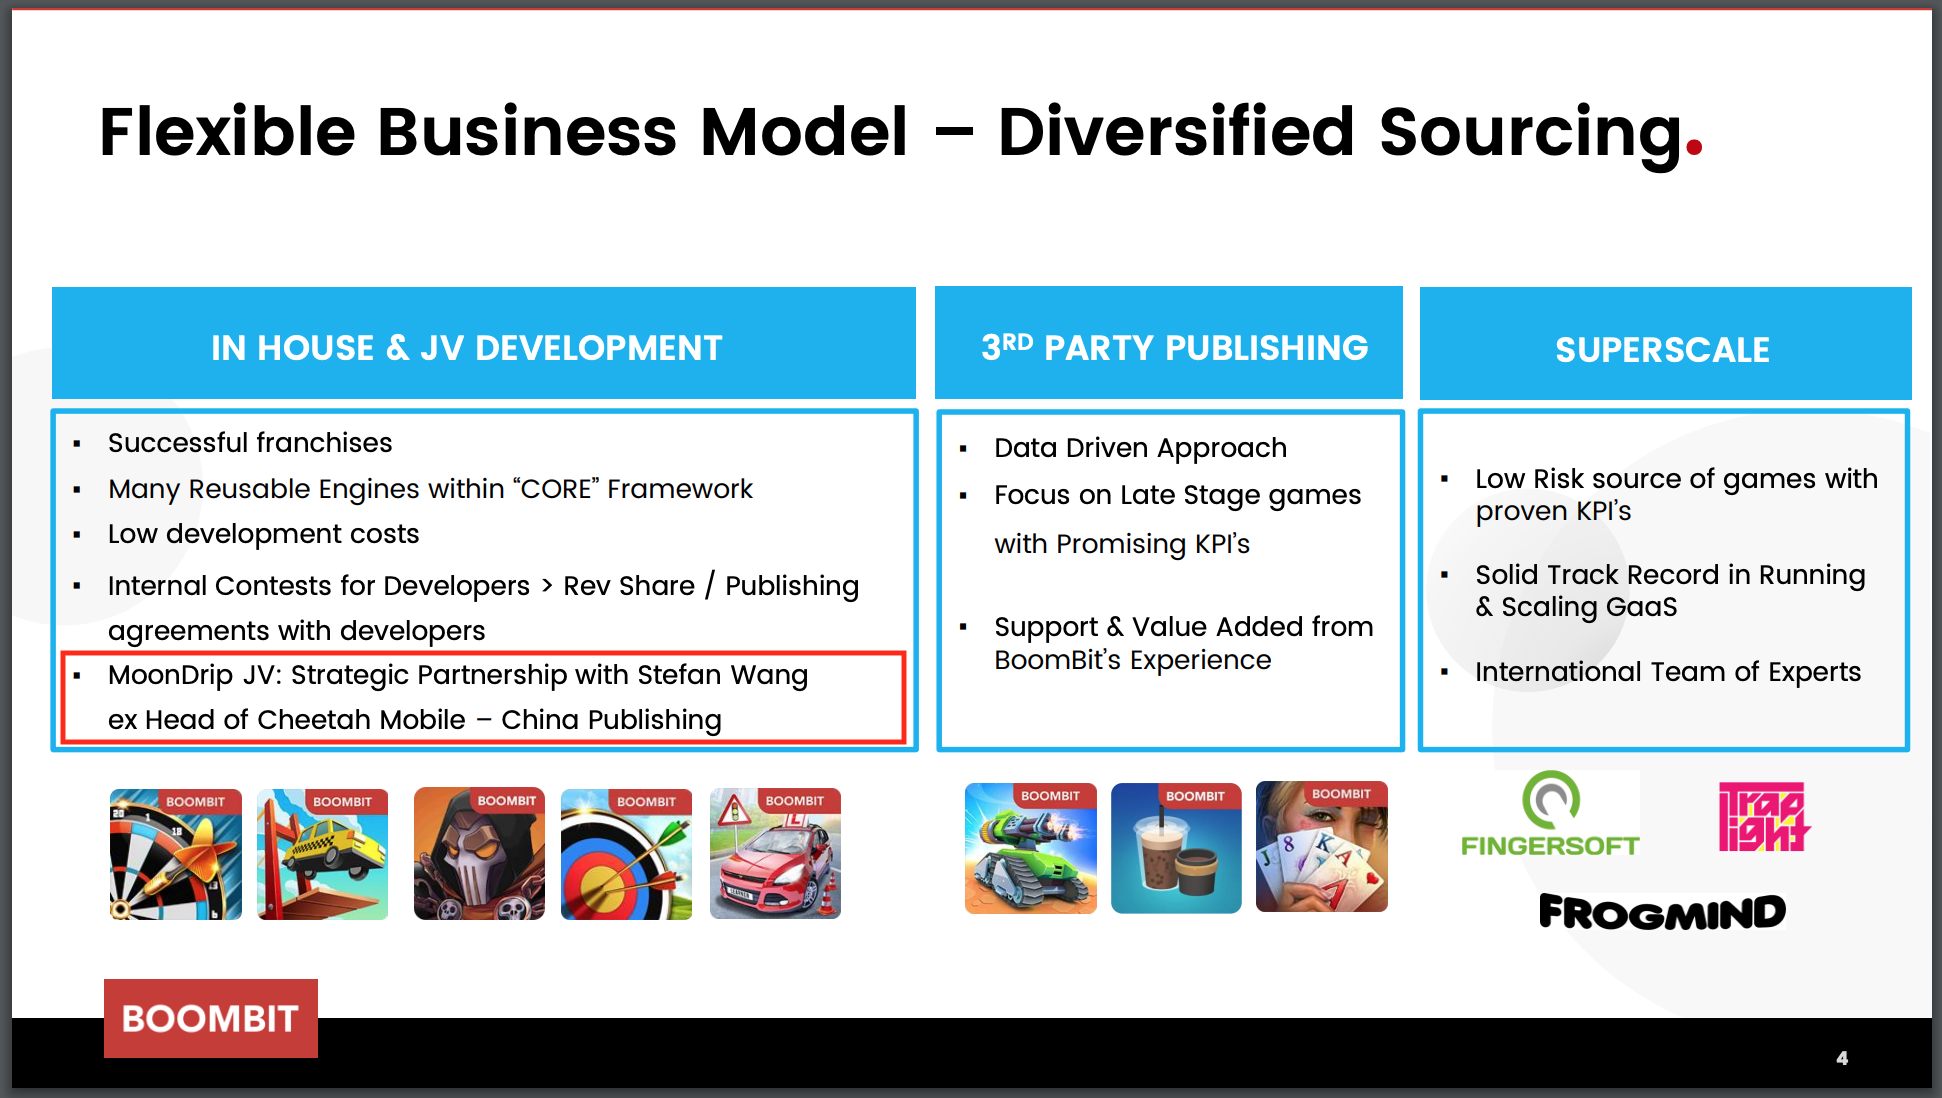 Habby's CEO is also part of a 50-50 joint venture with BoomBit under the name MoonDrip.   Source: BoomBit Q1 2019 results summary presentation